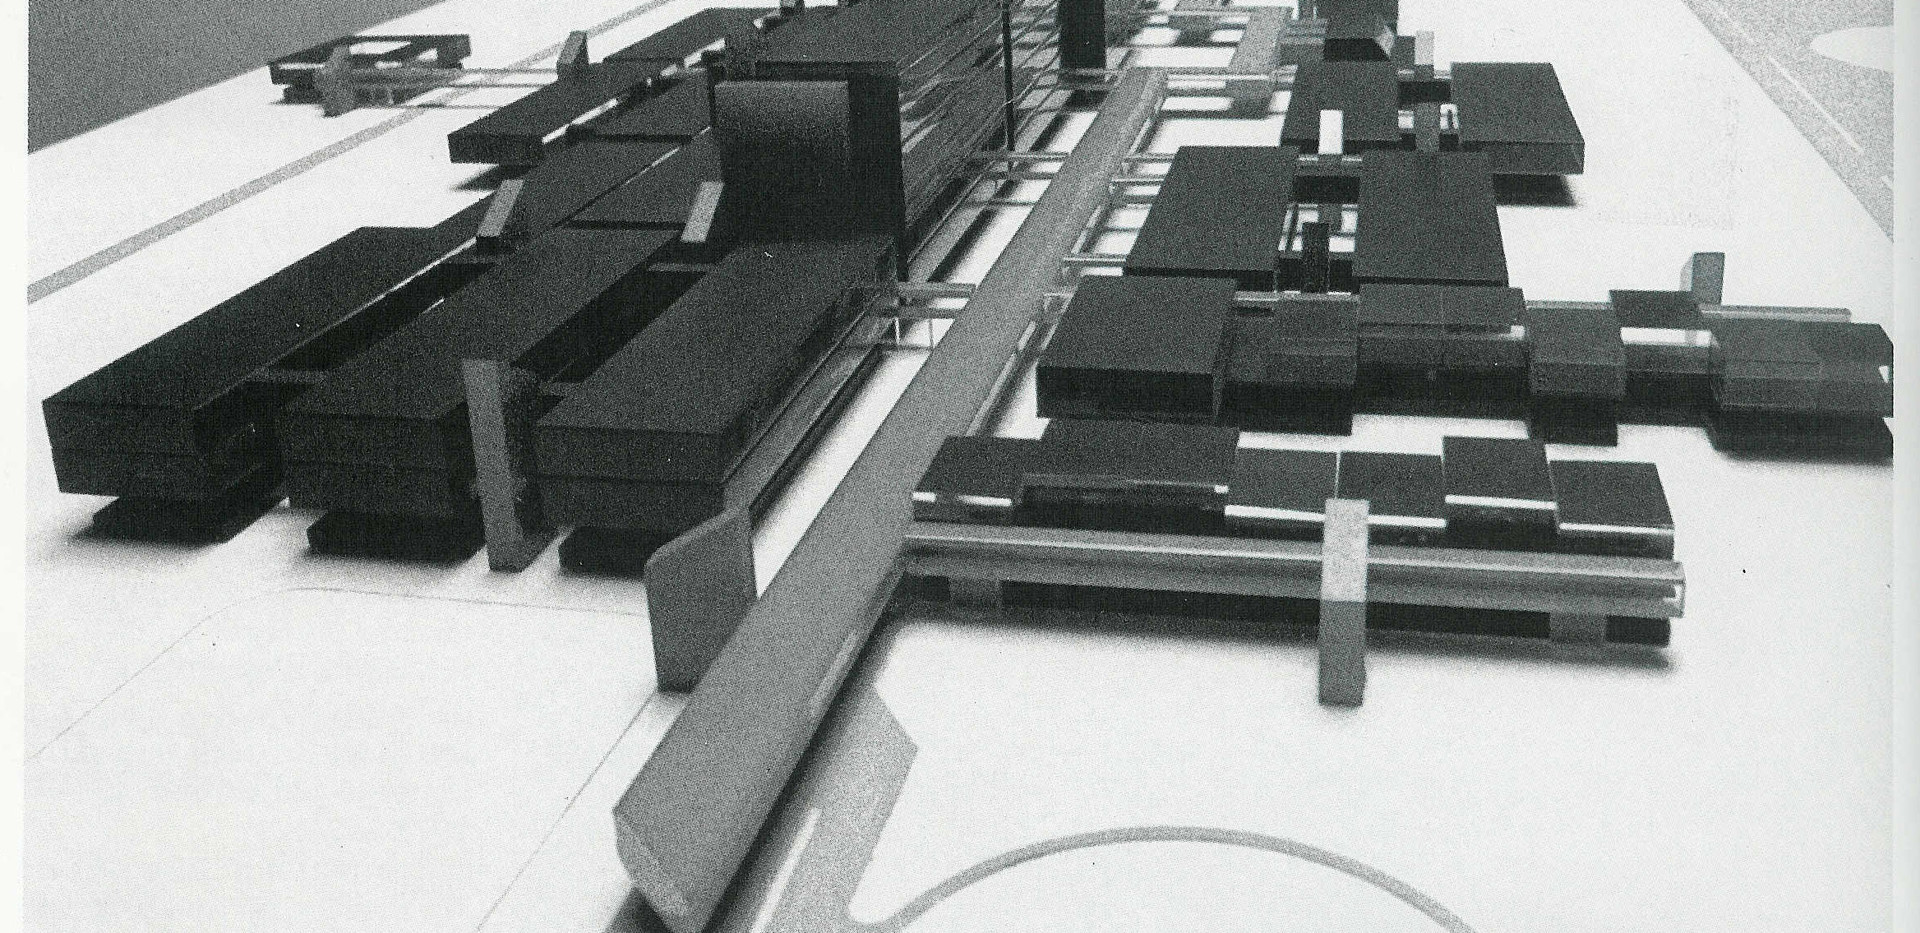 Hospital & Research Center - 1973